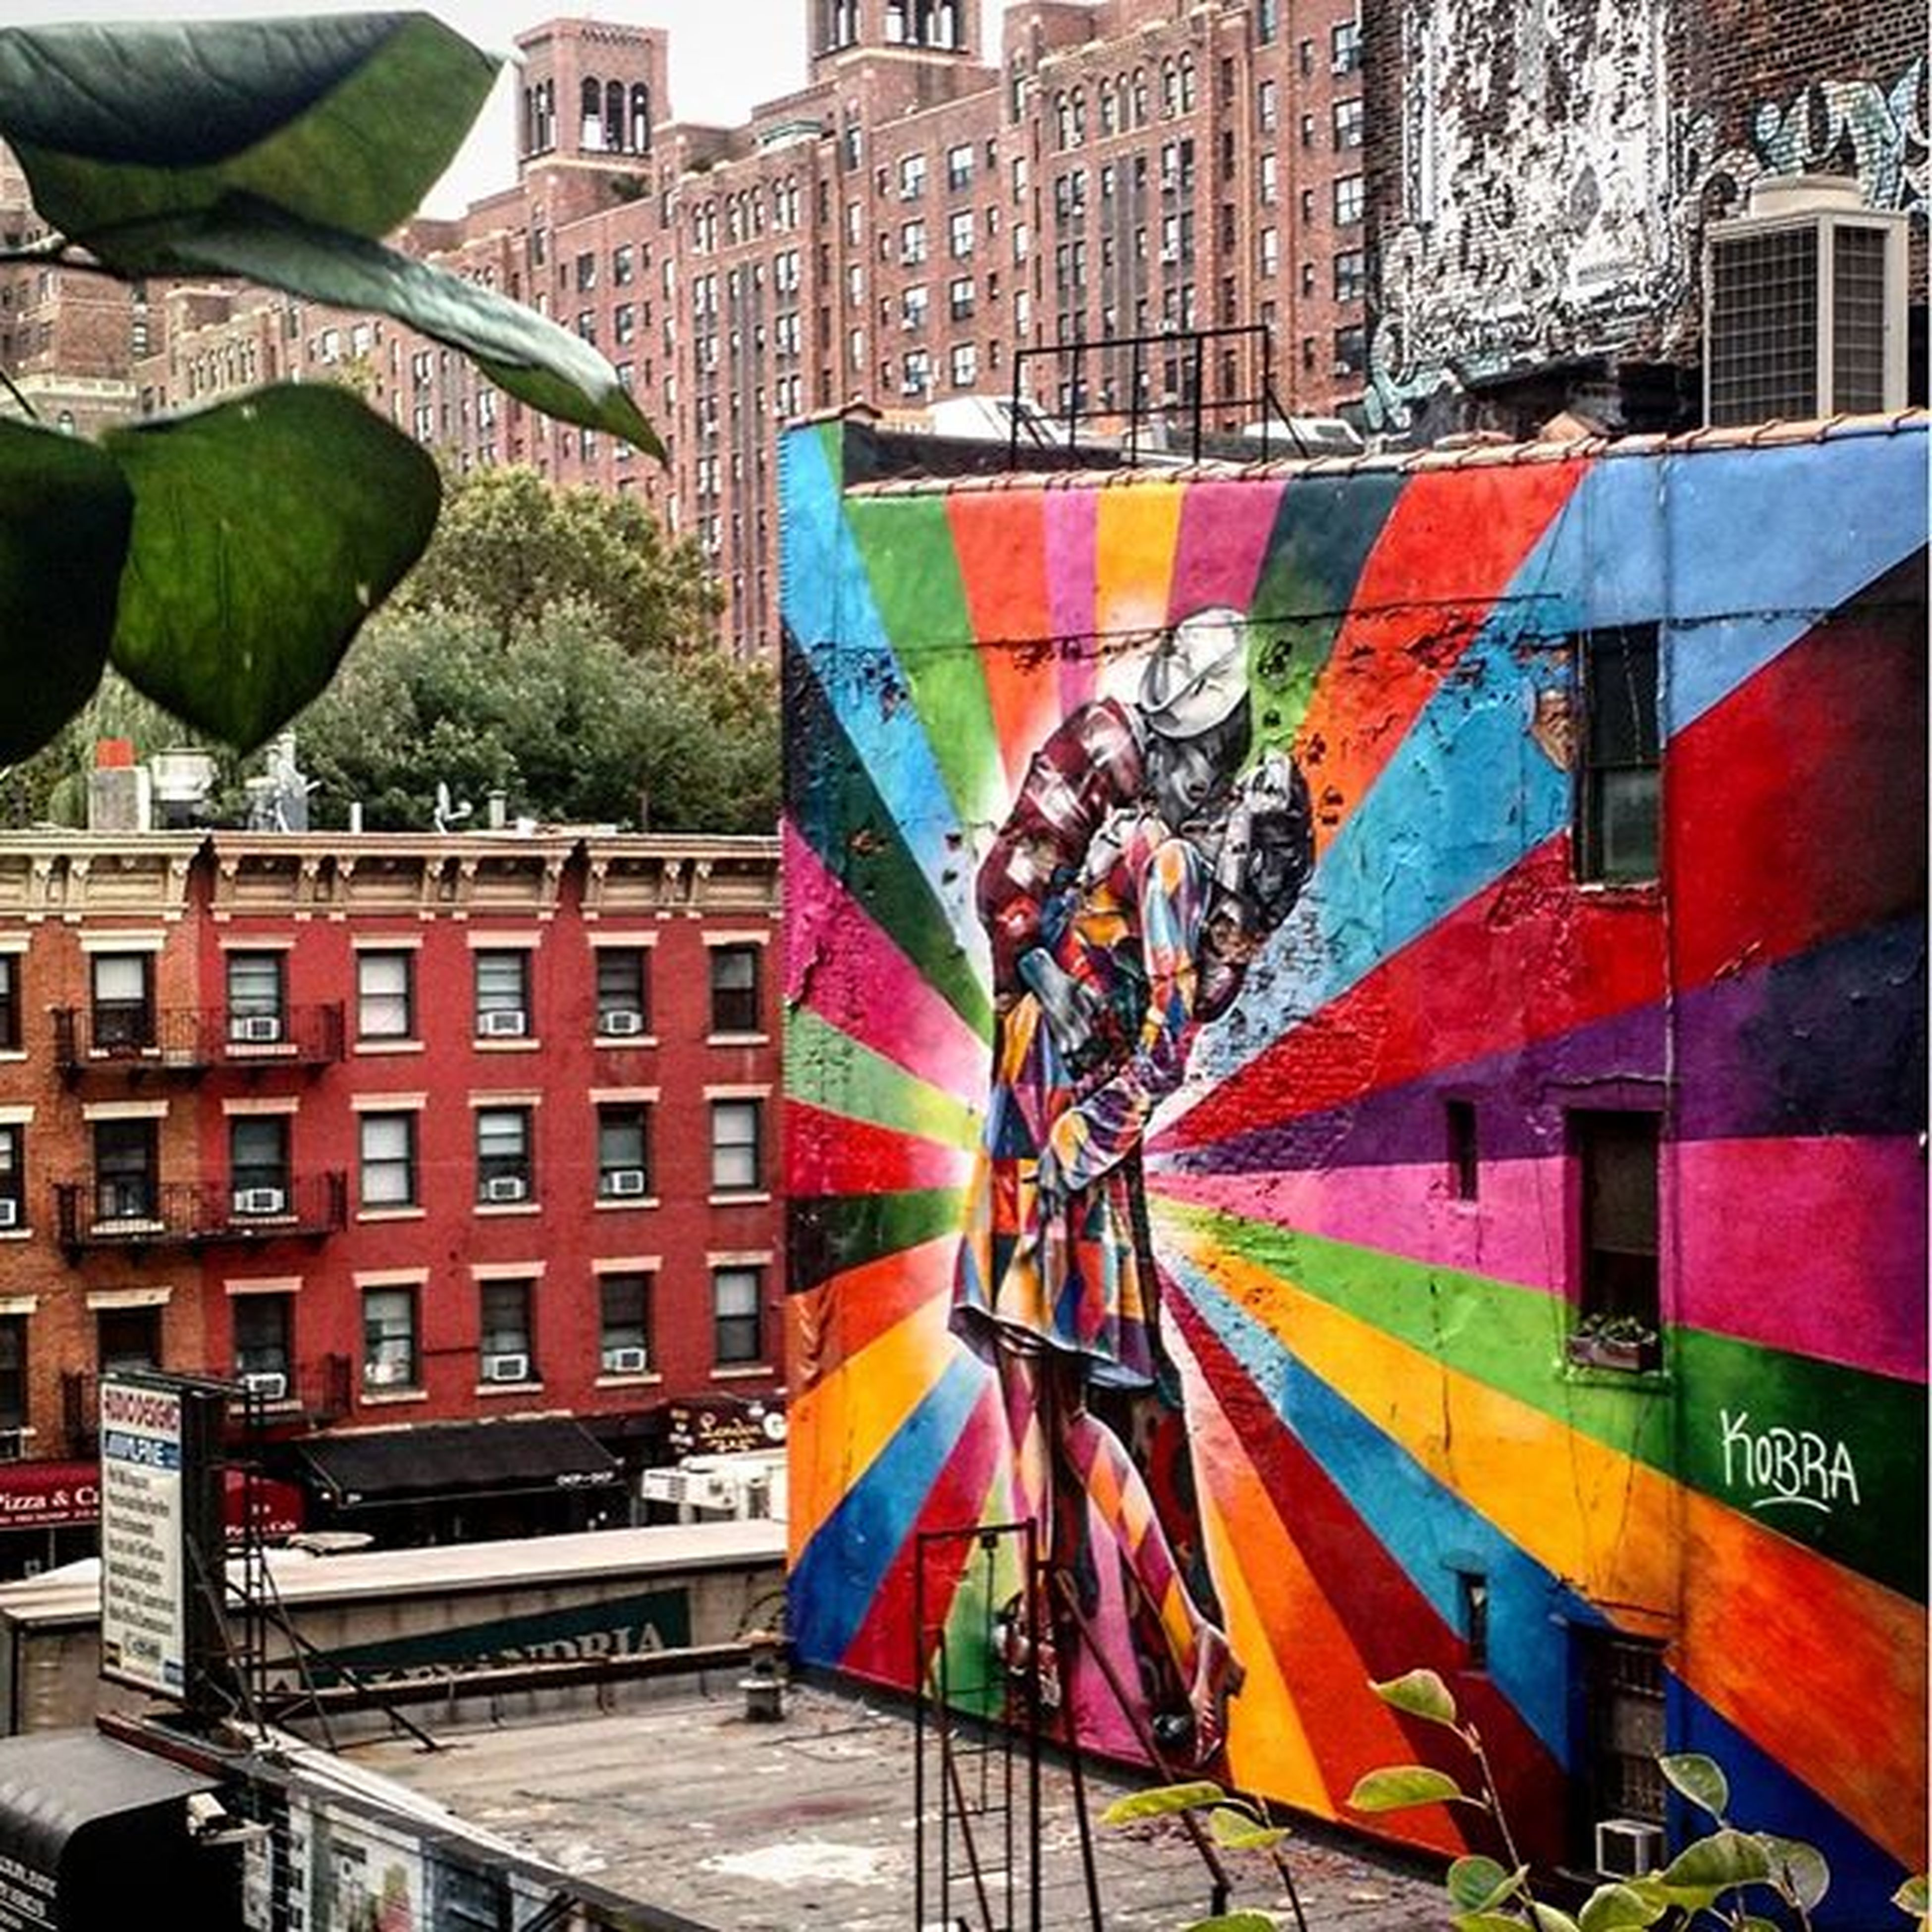 building exterior, architecture, built structure, graffiti, multi colored, art, creativity, art and craft, building, city, residential structure, outdoors, residential building, day, colorful, wall - building feature, street art, no people, text, house